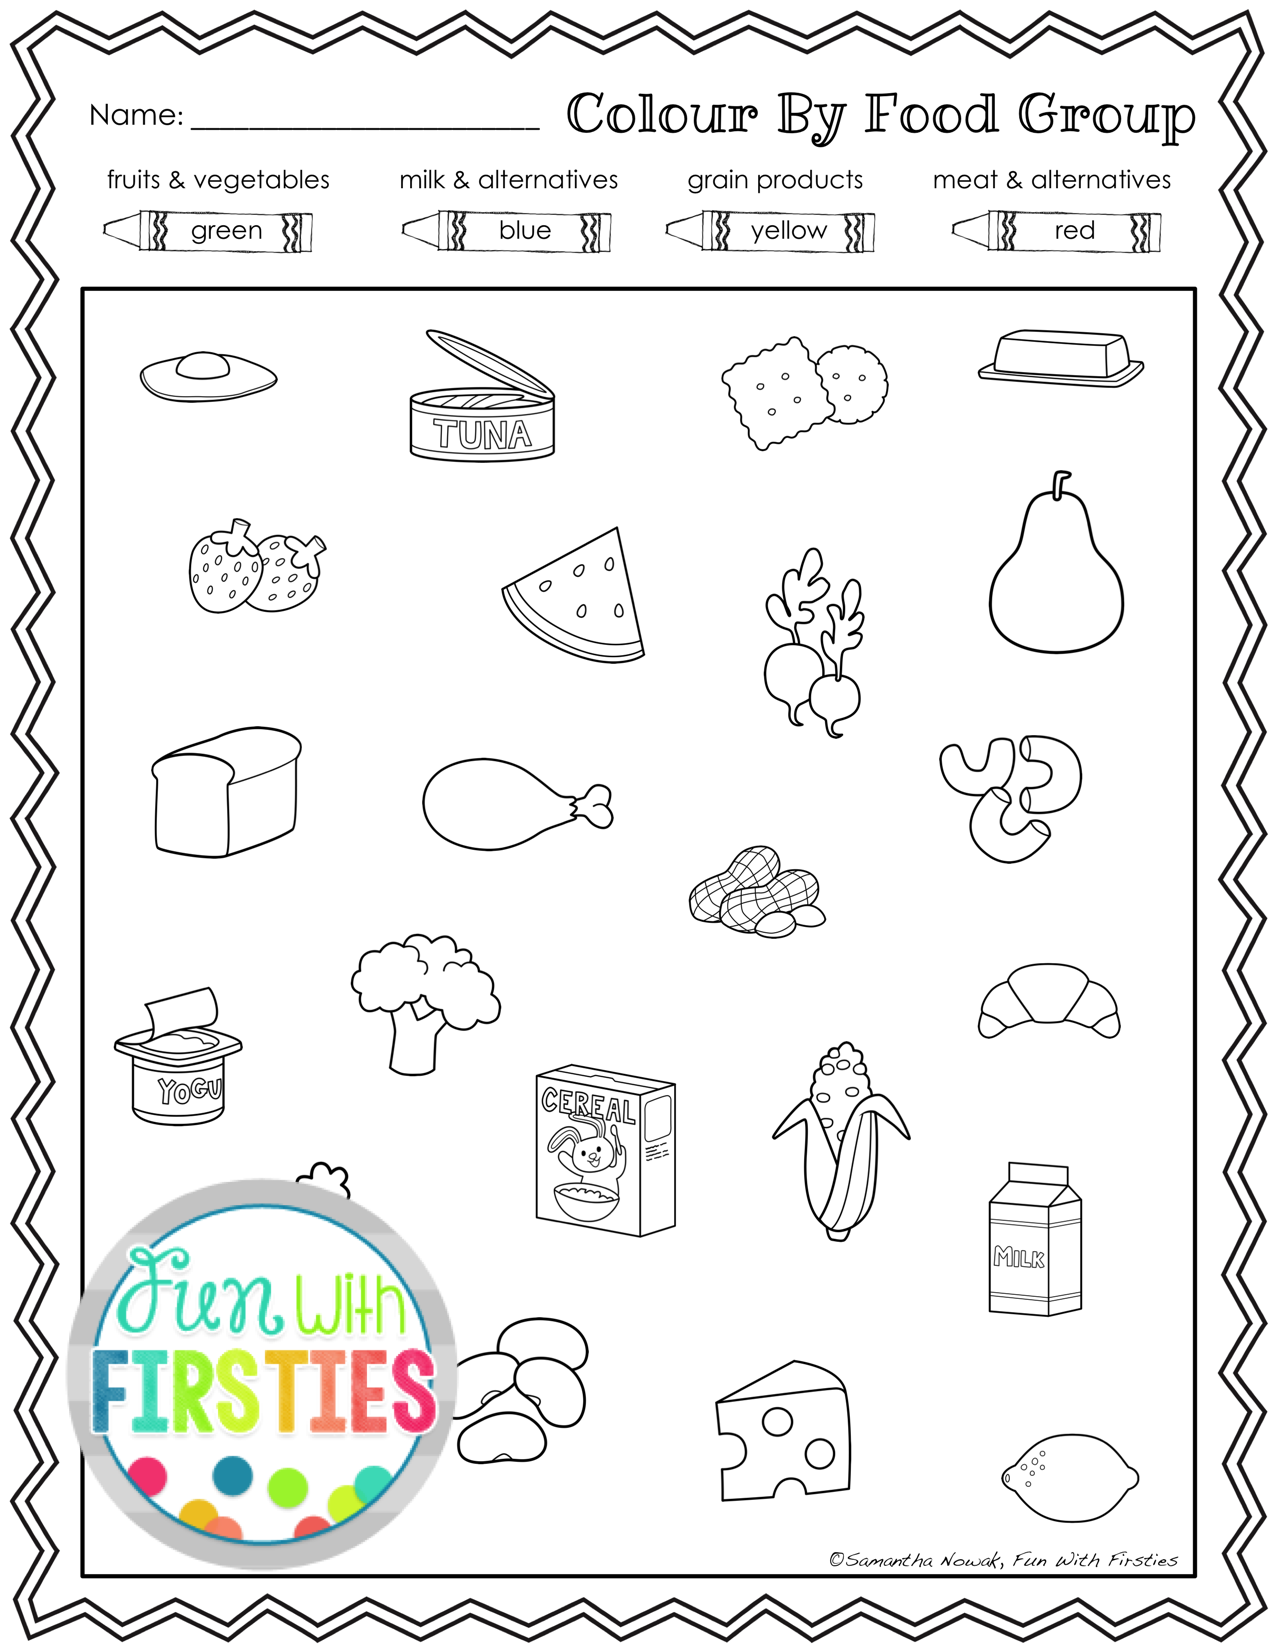 Worksheets Healthy Eating Worksheets healthy eating a nutrition food groups pack with activities worksheets and for health unit